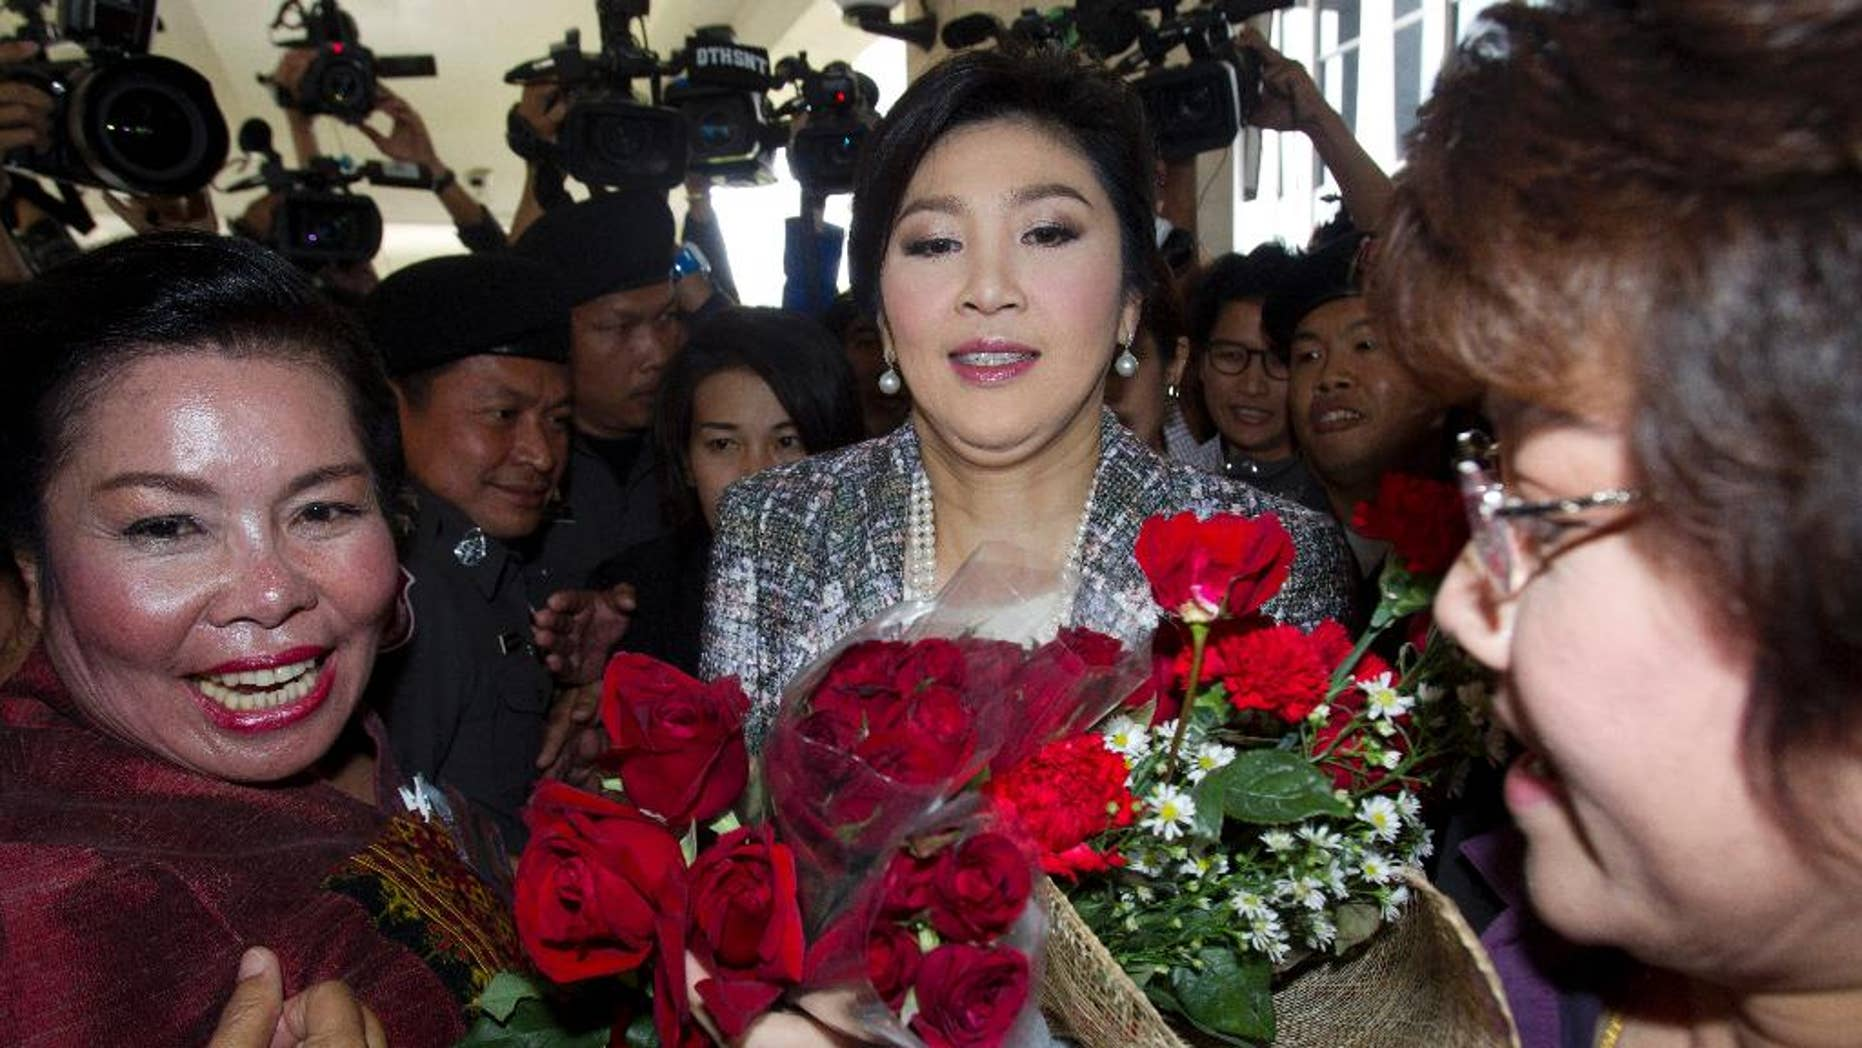 Thailand's former Prime Minister Yingluck Shinawatra, center, receives flowers from her supporters as she leaves parliament in Bangkok, Thailand, Thursday, Jan. 22, 2015. Thailand's military-appointed legislature is set to vote on impeachment against Yingluck over a government's rice subsidy scheme on Friday. AP Photo/Sakchai Lalit)